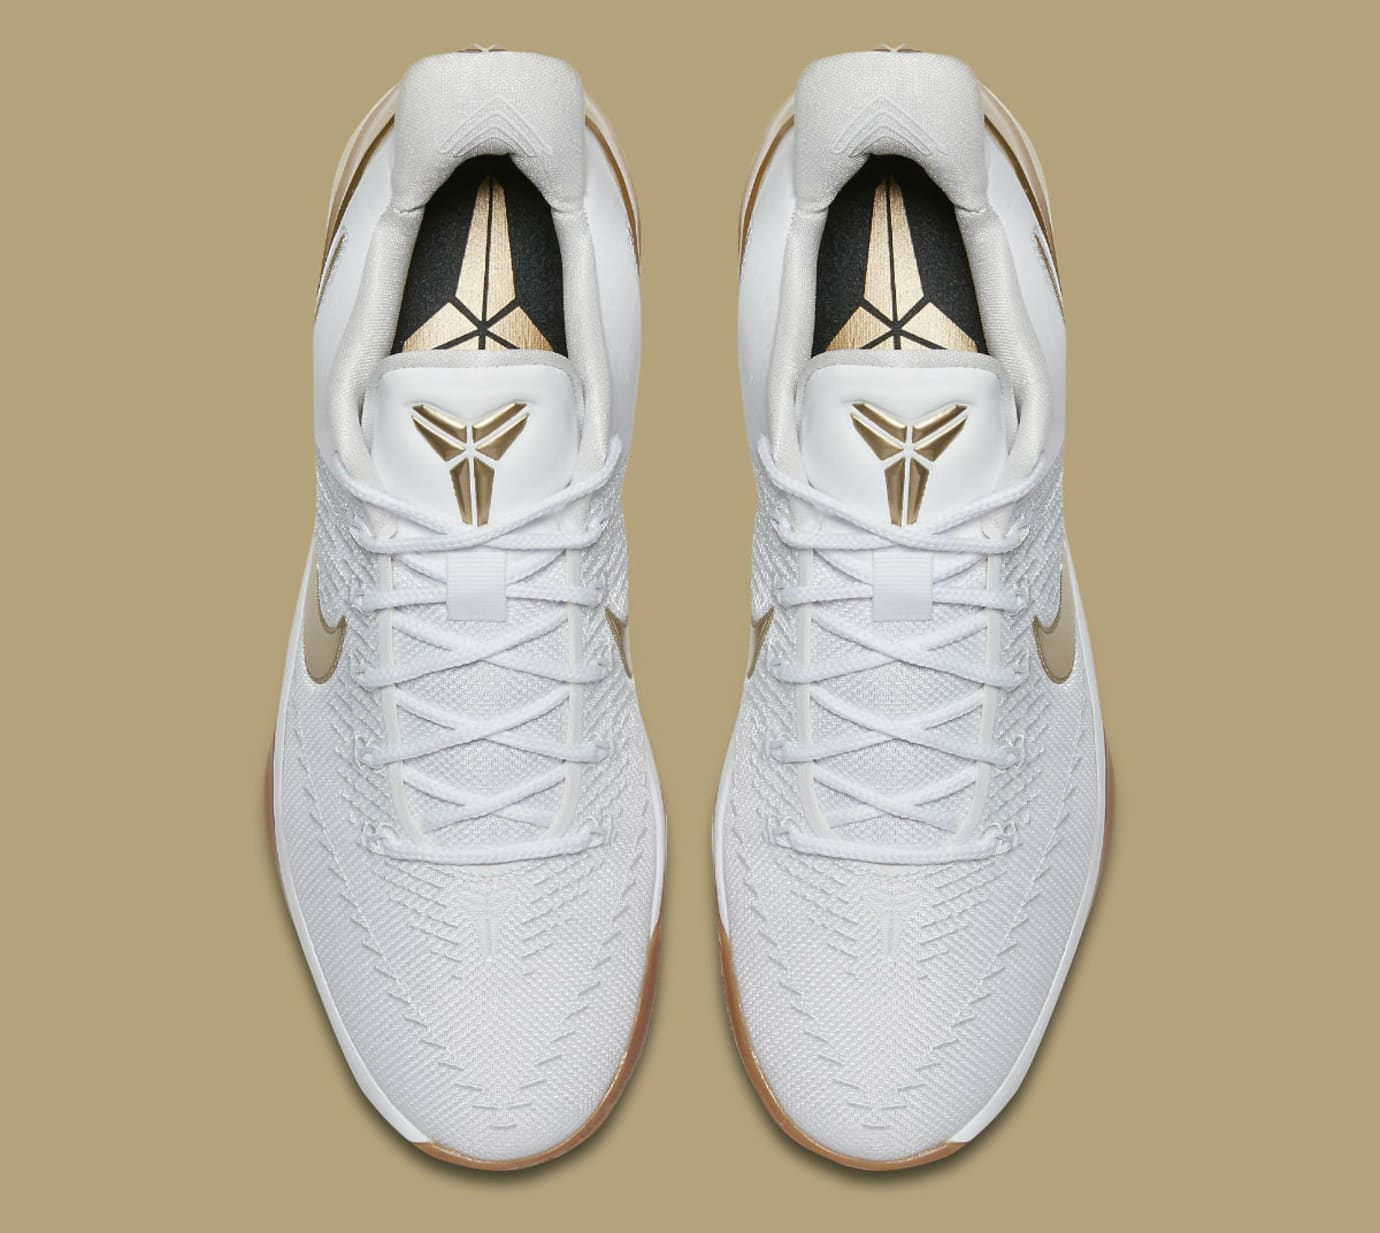 Nike Kobe A D White Gold Release Date 852425 107 Sole Collector